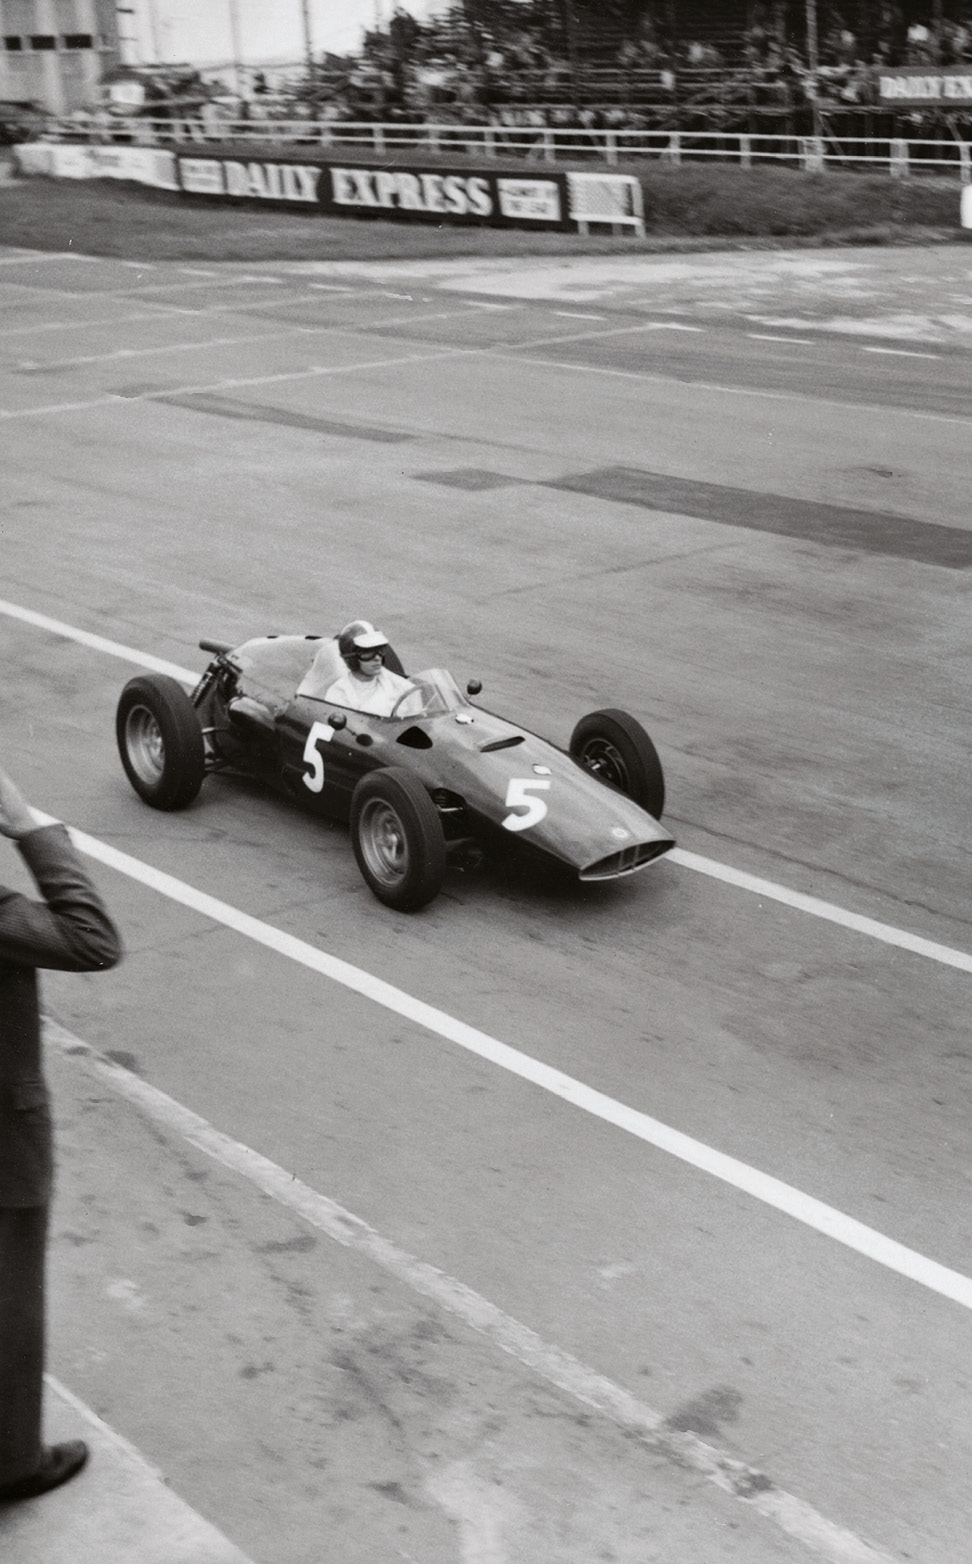 All shots below here are from the 1960 British GP meeting. Here, Dan Gurney enters the pits in his BRM P48